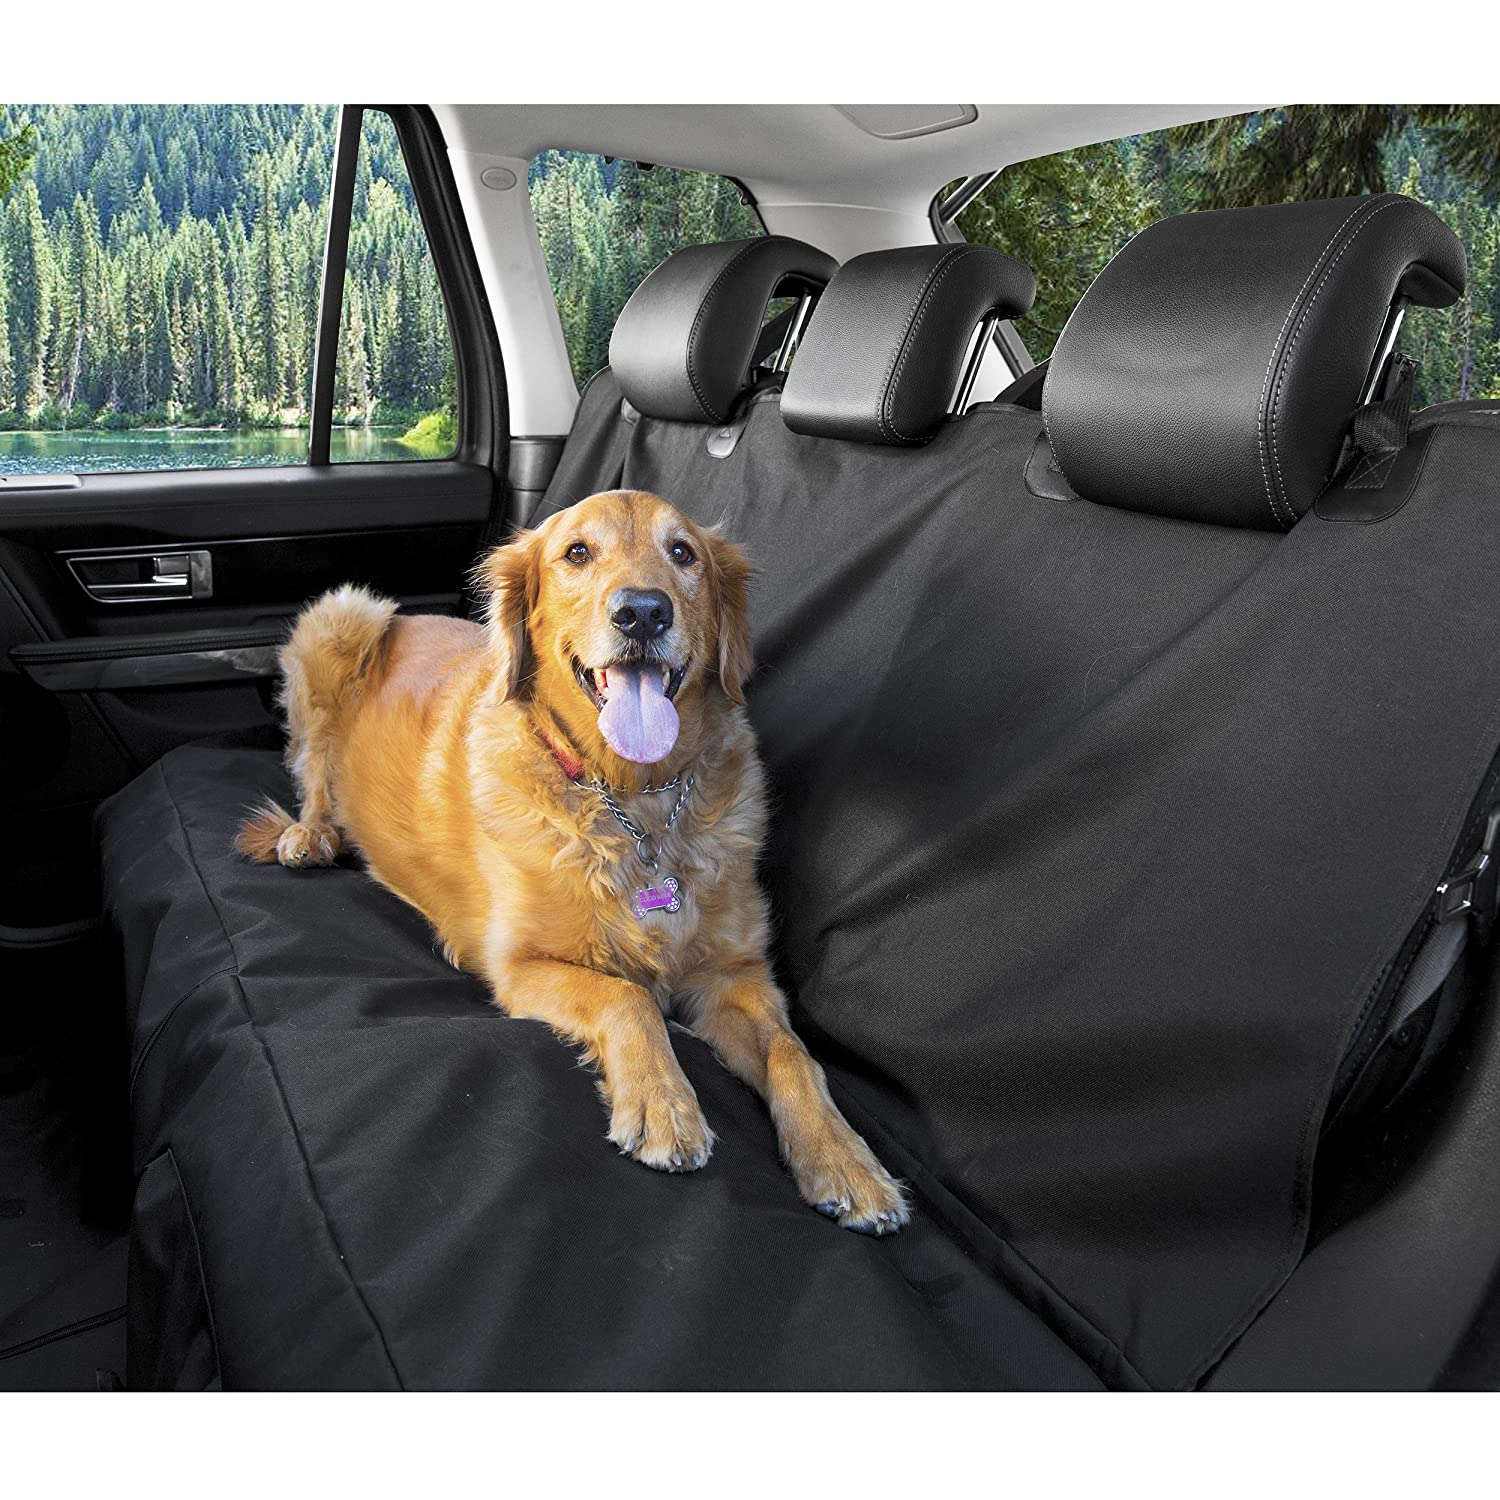 with how seat step crafts pet dog to car safety make diy hammock learn decorate practicing a tos and